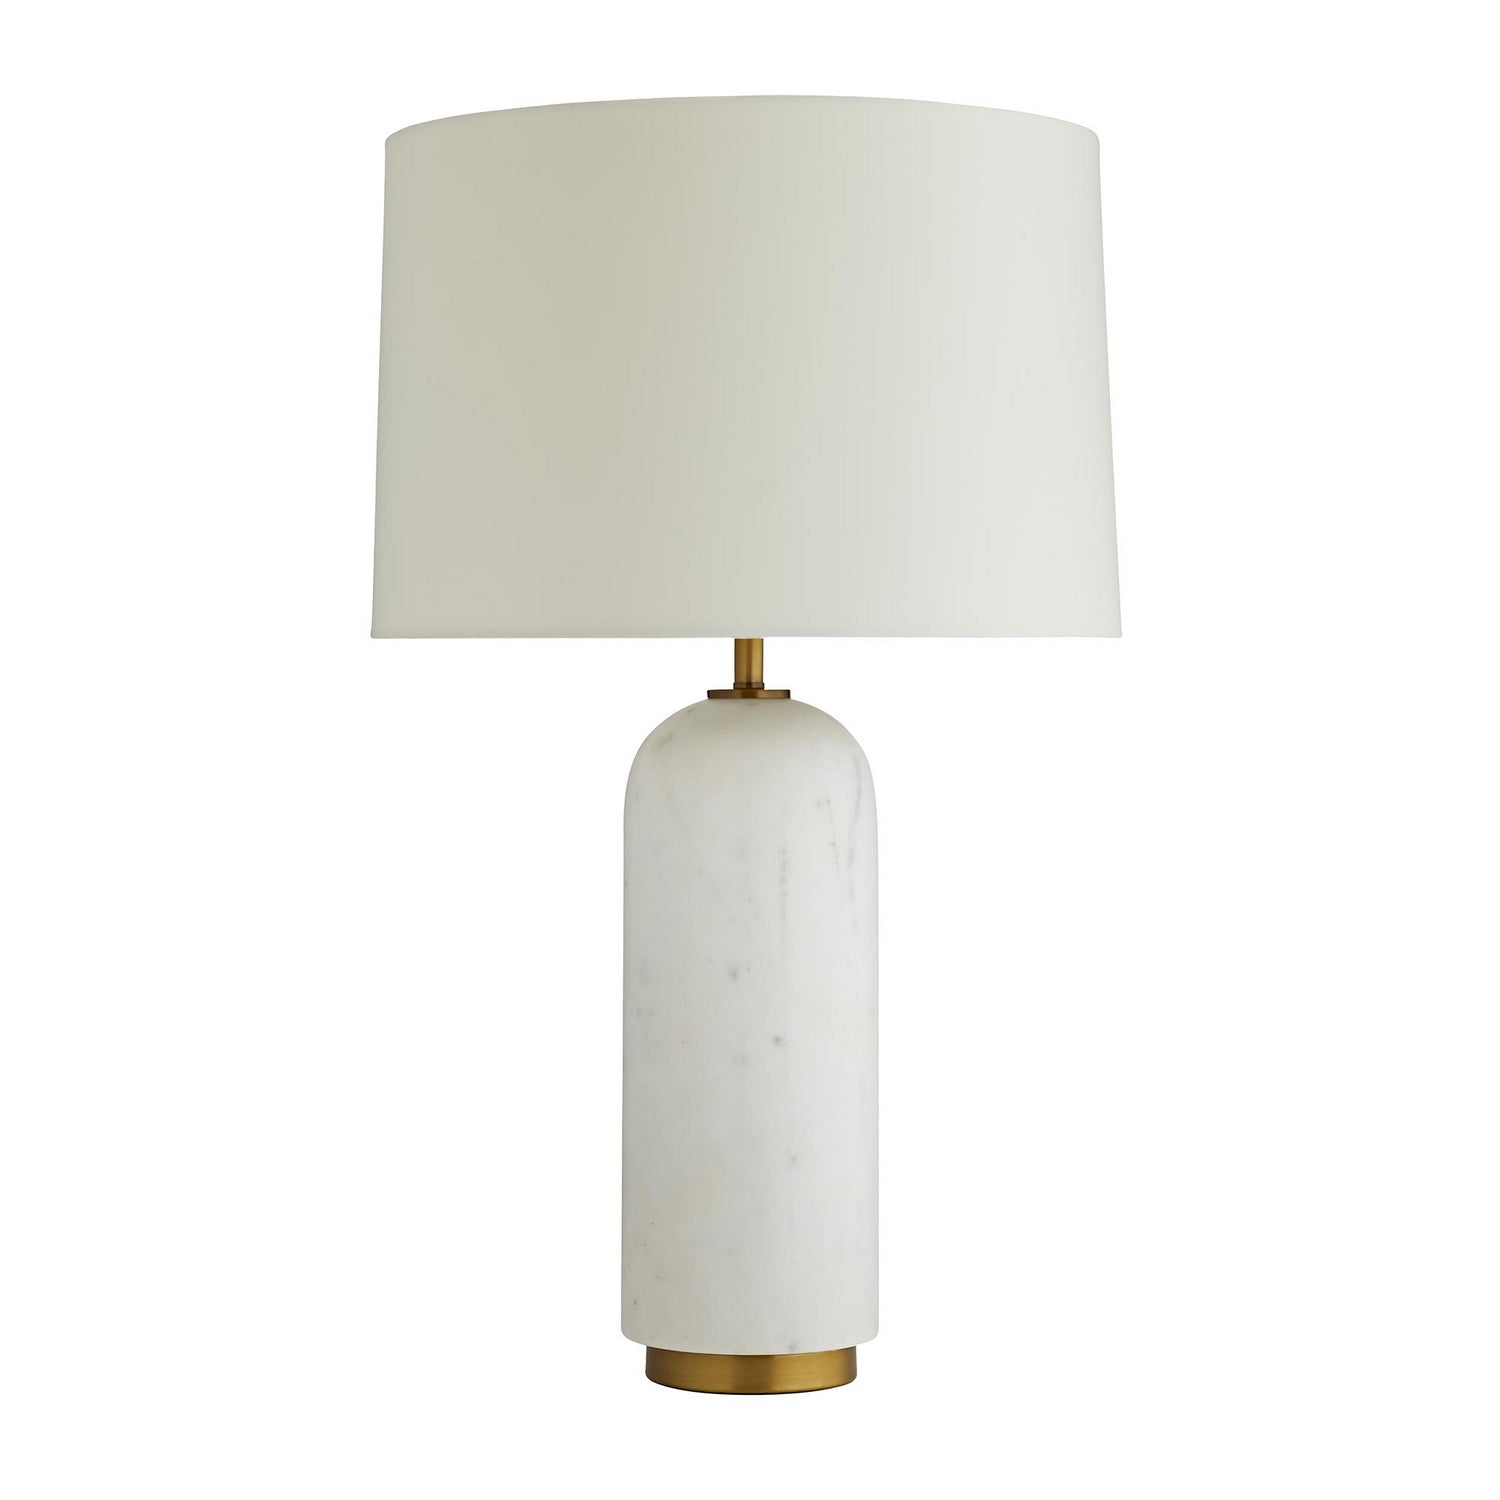 Arteriors - One Light Table Lamp - Waterson - White